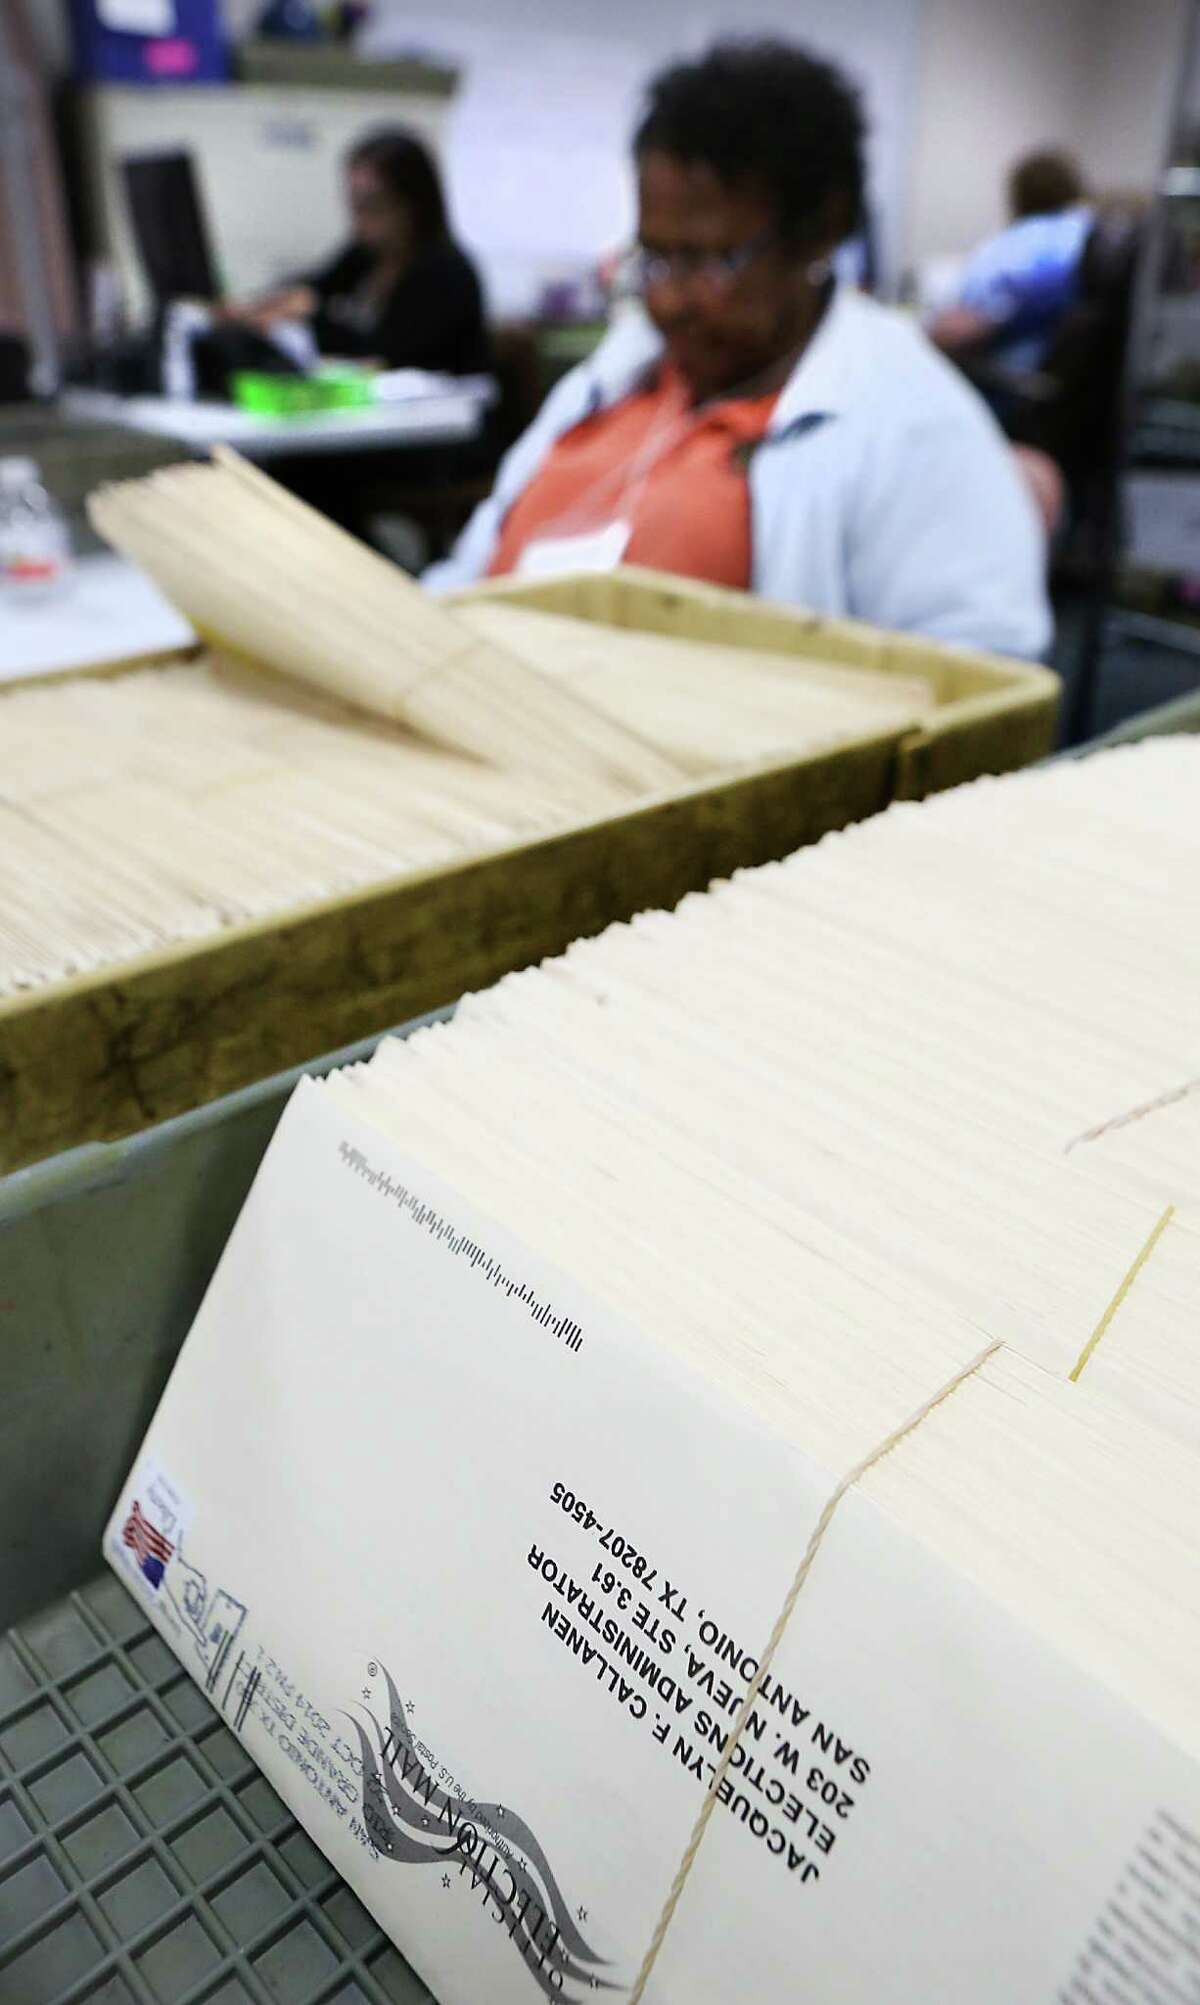 Workers at the Bexar County Elections Department sort through mailed in election ballots making sure they are signed. Thursday Oct. 23, 2014.